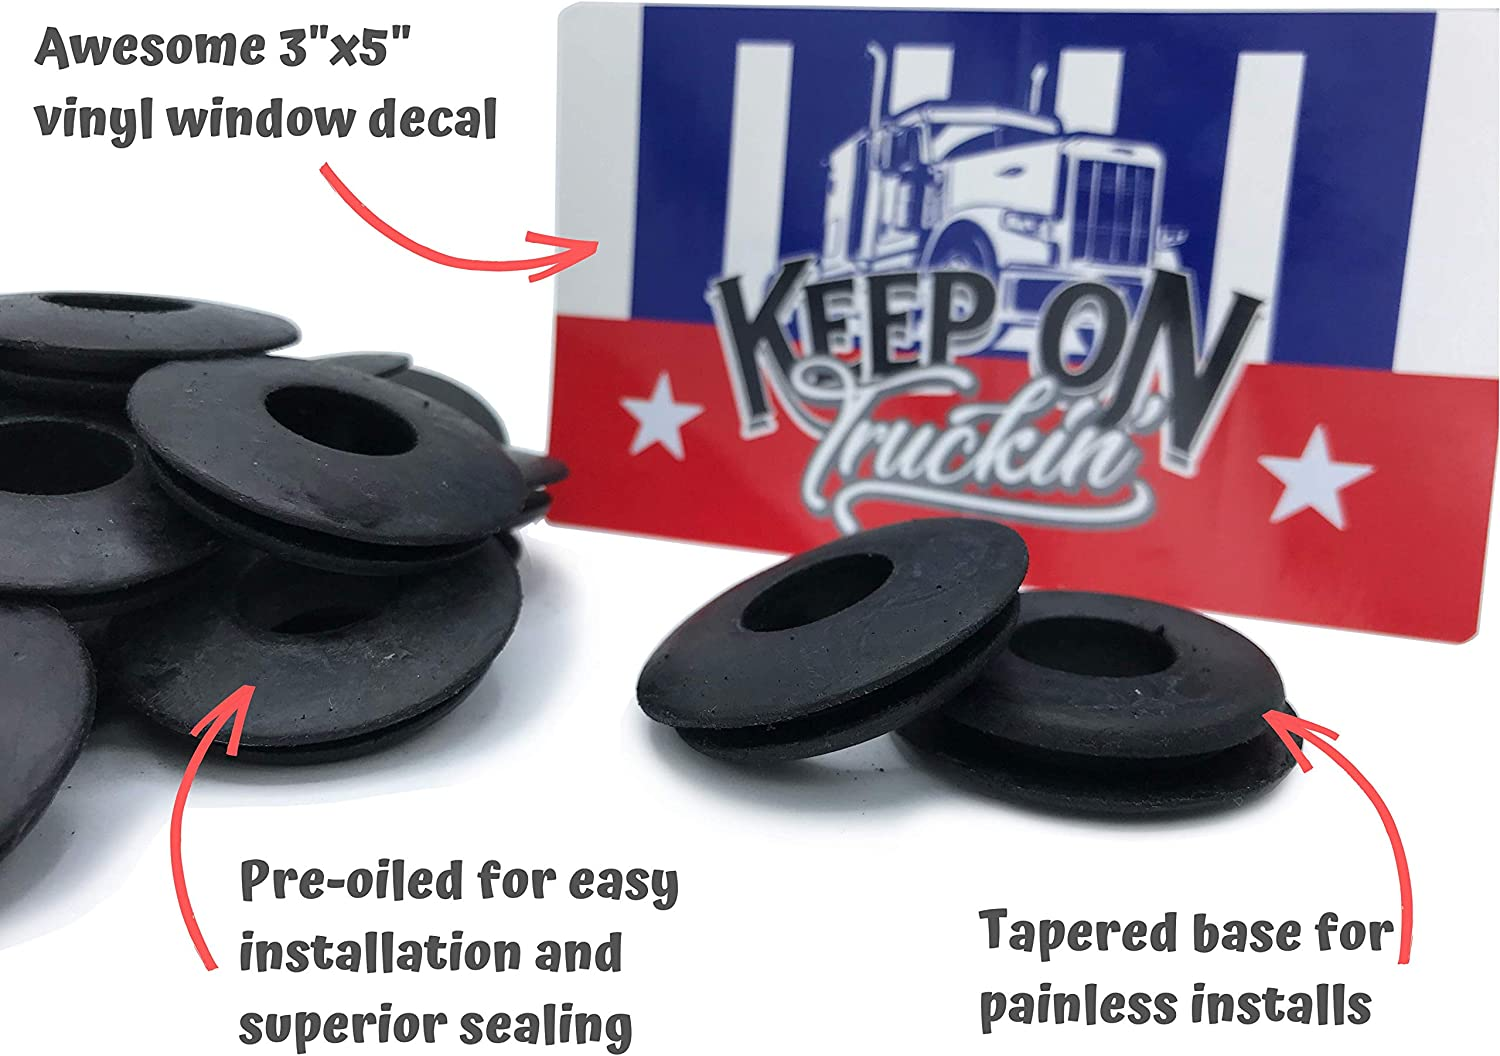 """Real Genuine Rubber 20 KCP Performace Fleet Rubber Gladhand Seals with Window Sticker 10 or 20 Pack with Bonus /""""Keep On Truckin/'/"""" Sticker"""